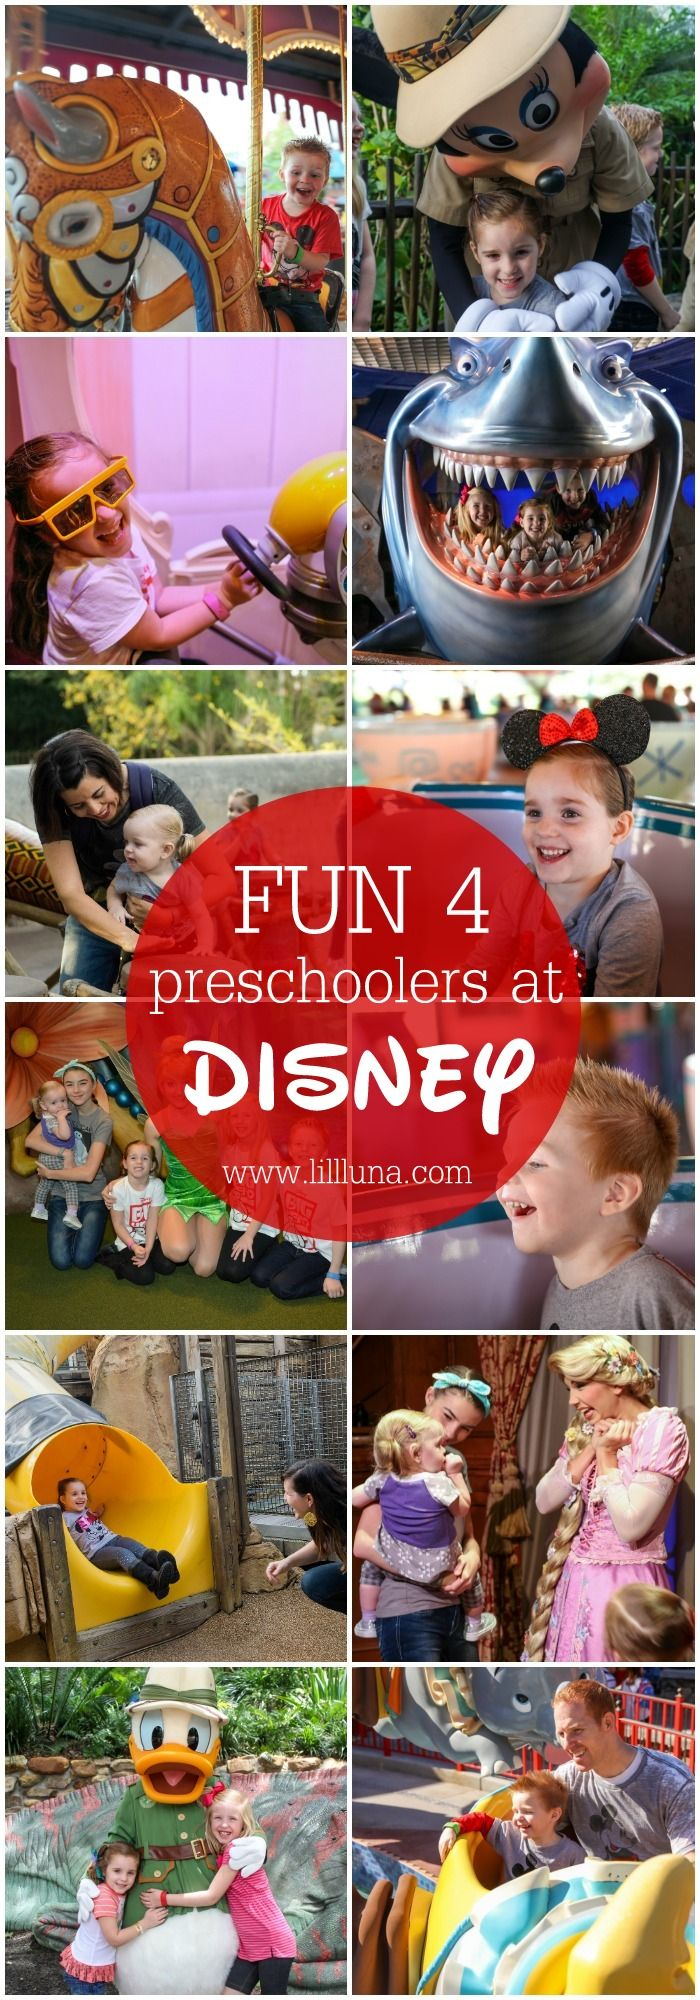 Fun for Preschoolers at Disney - great suggestions for attractions, events and places to visit while on your Walt Disney World vacation. #ad